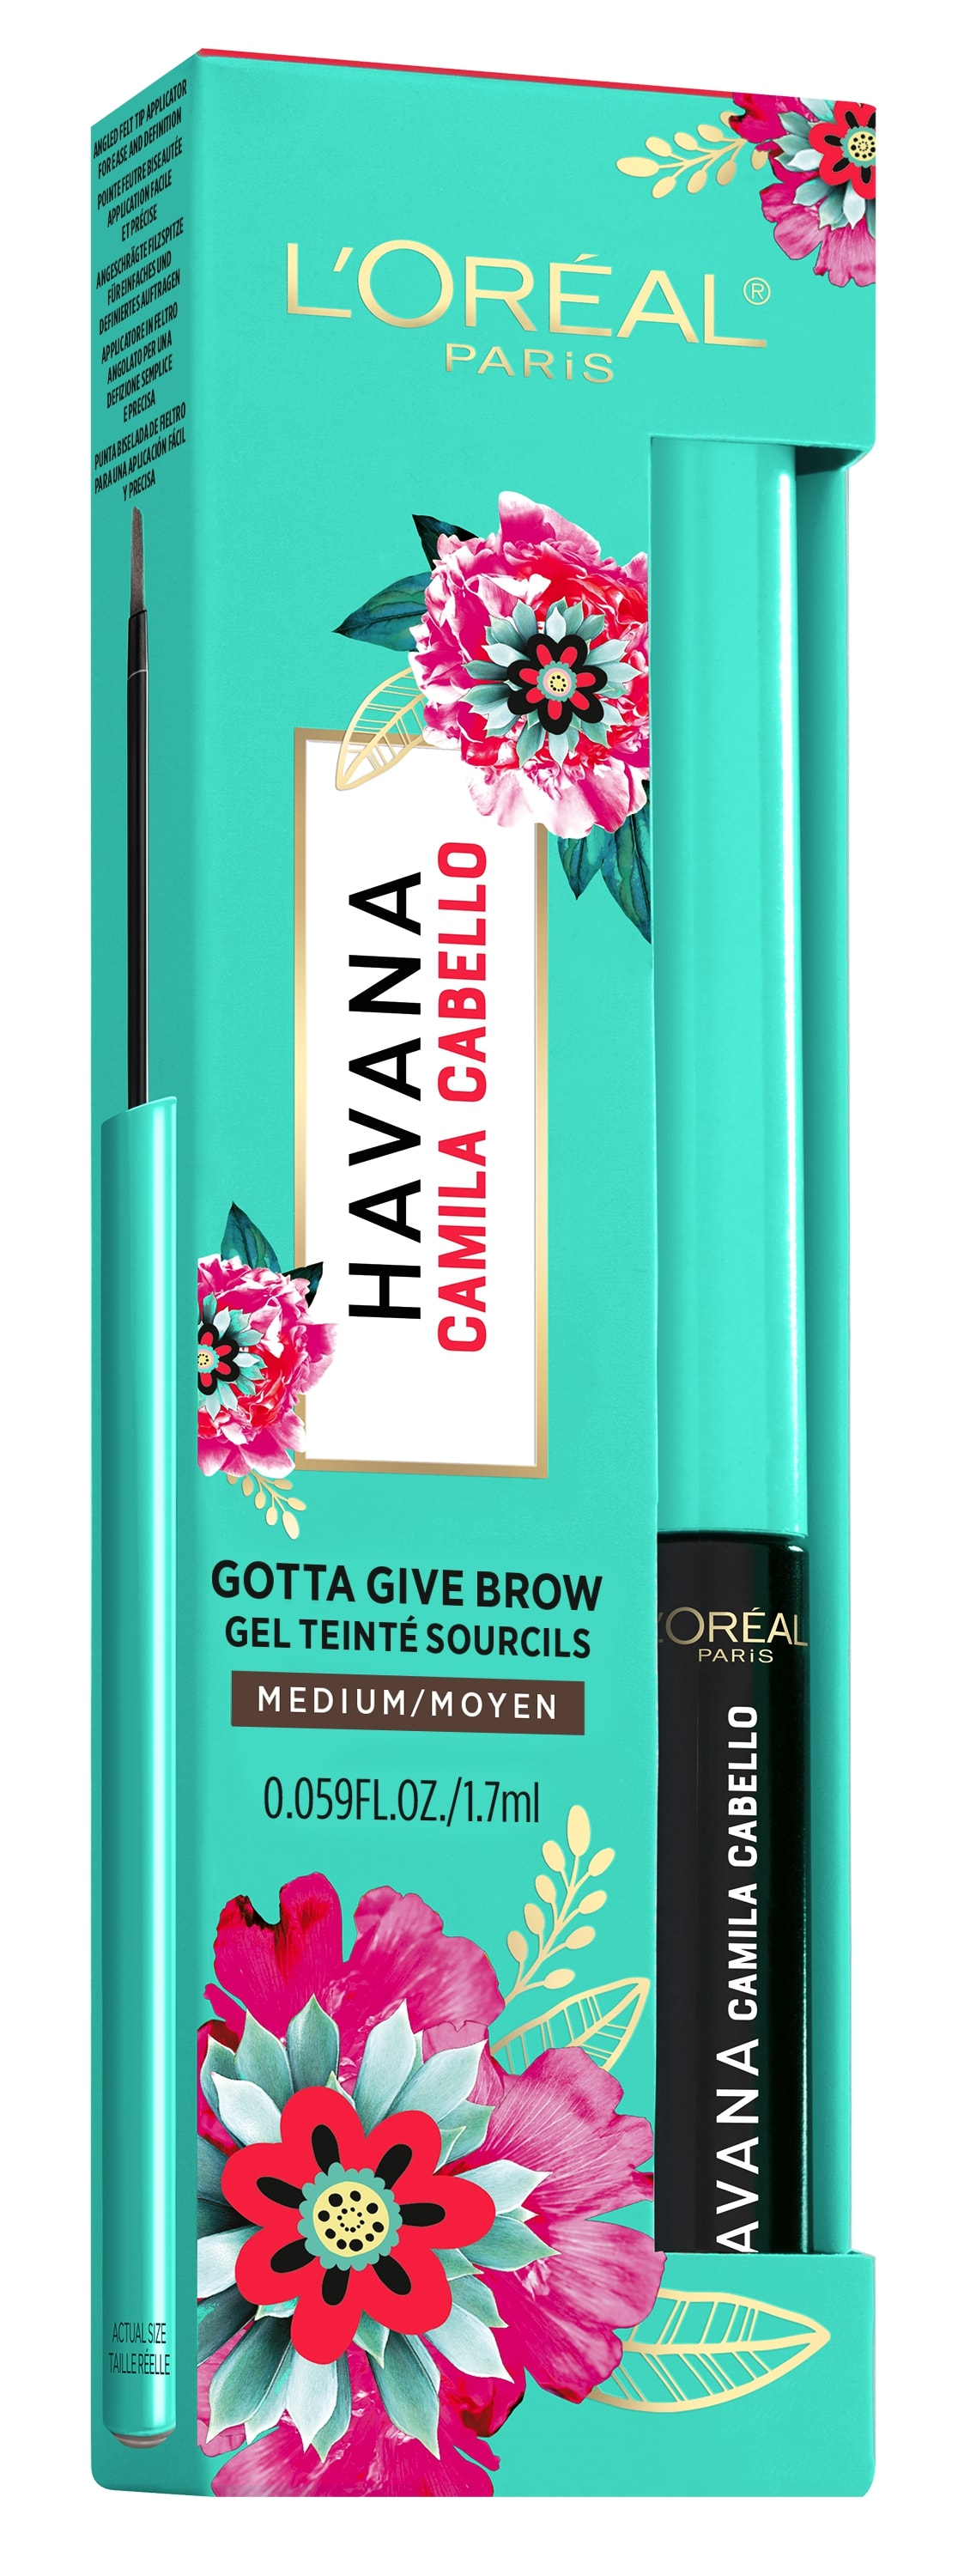 Havana Camila Cabello Gotta Give Brow Gel